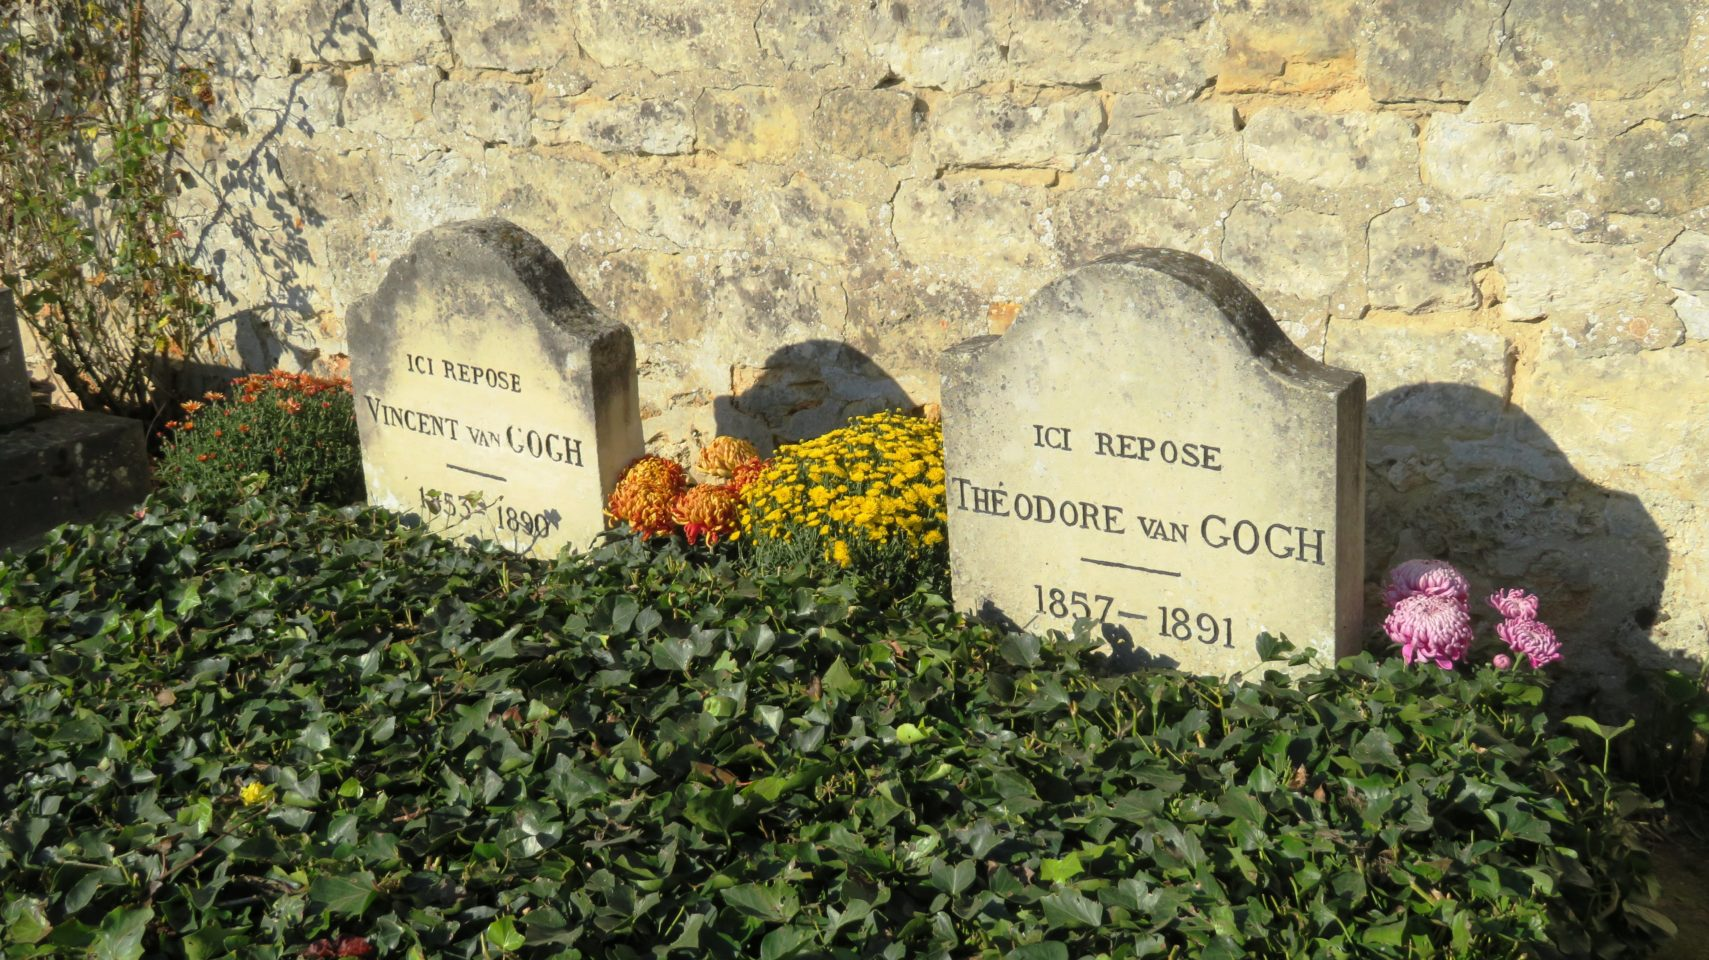 The resting place of the Van Goghs at the cemetery of Auvers-sur-Oise, France (Paris and Normandie AMAWaterways Cruise)